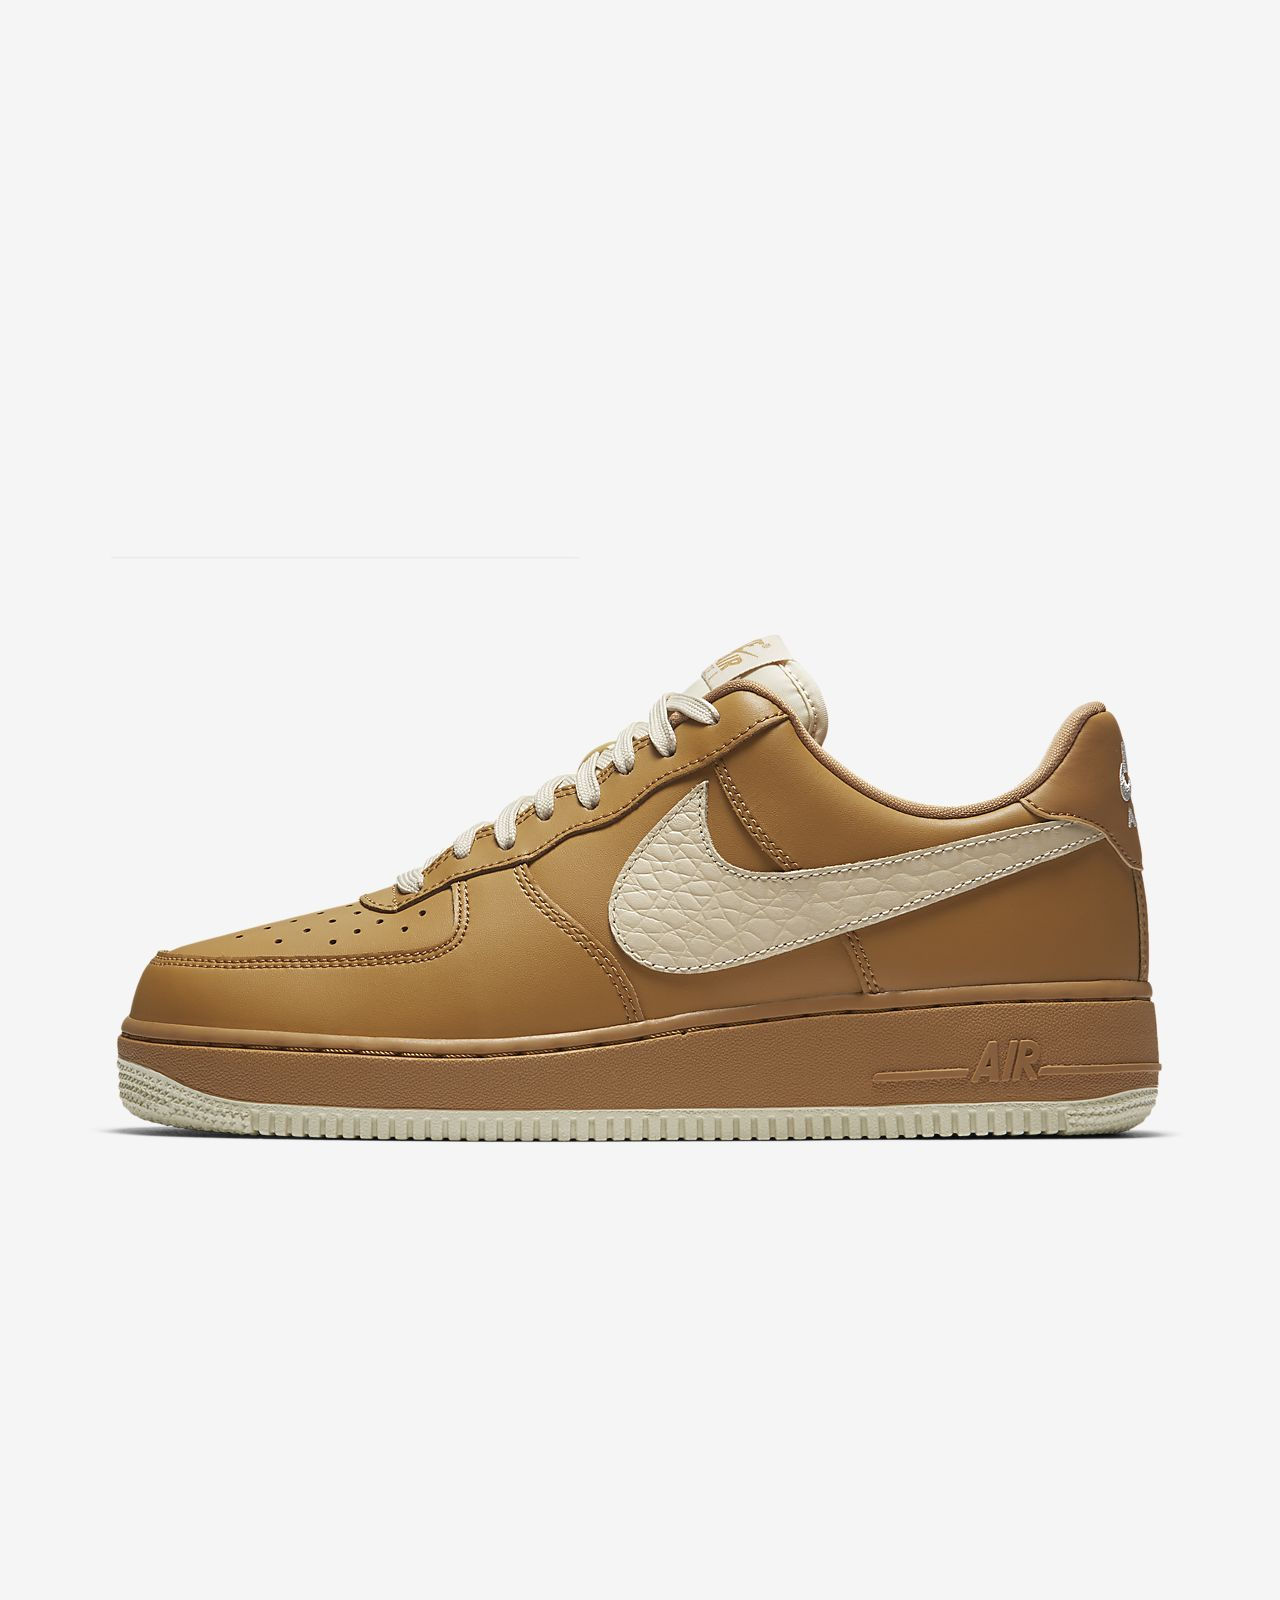 ... Chaussure Nike Air Force 1 Low 07 LV8 pour Homme